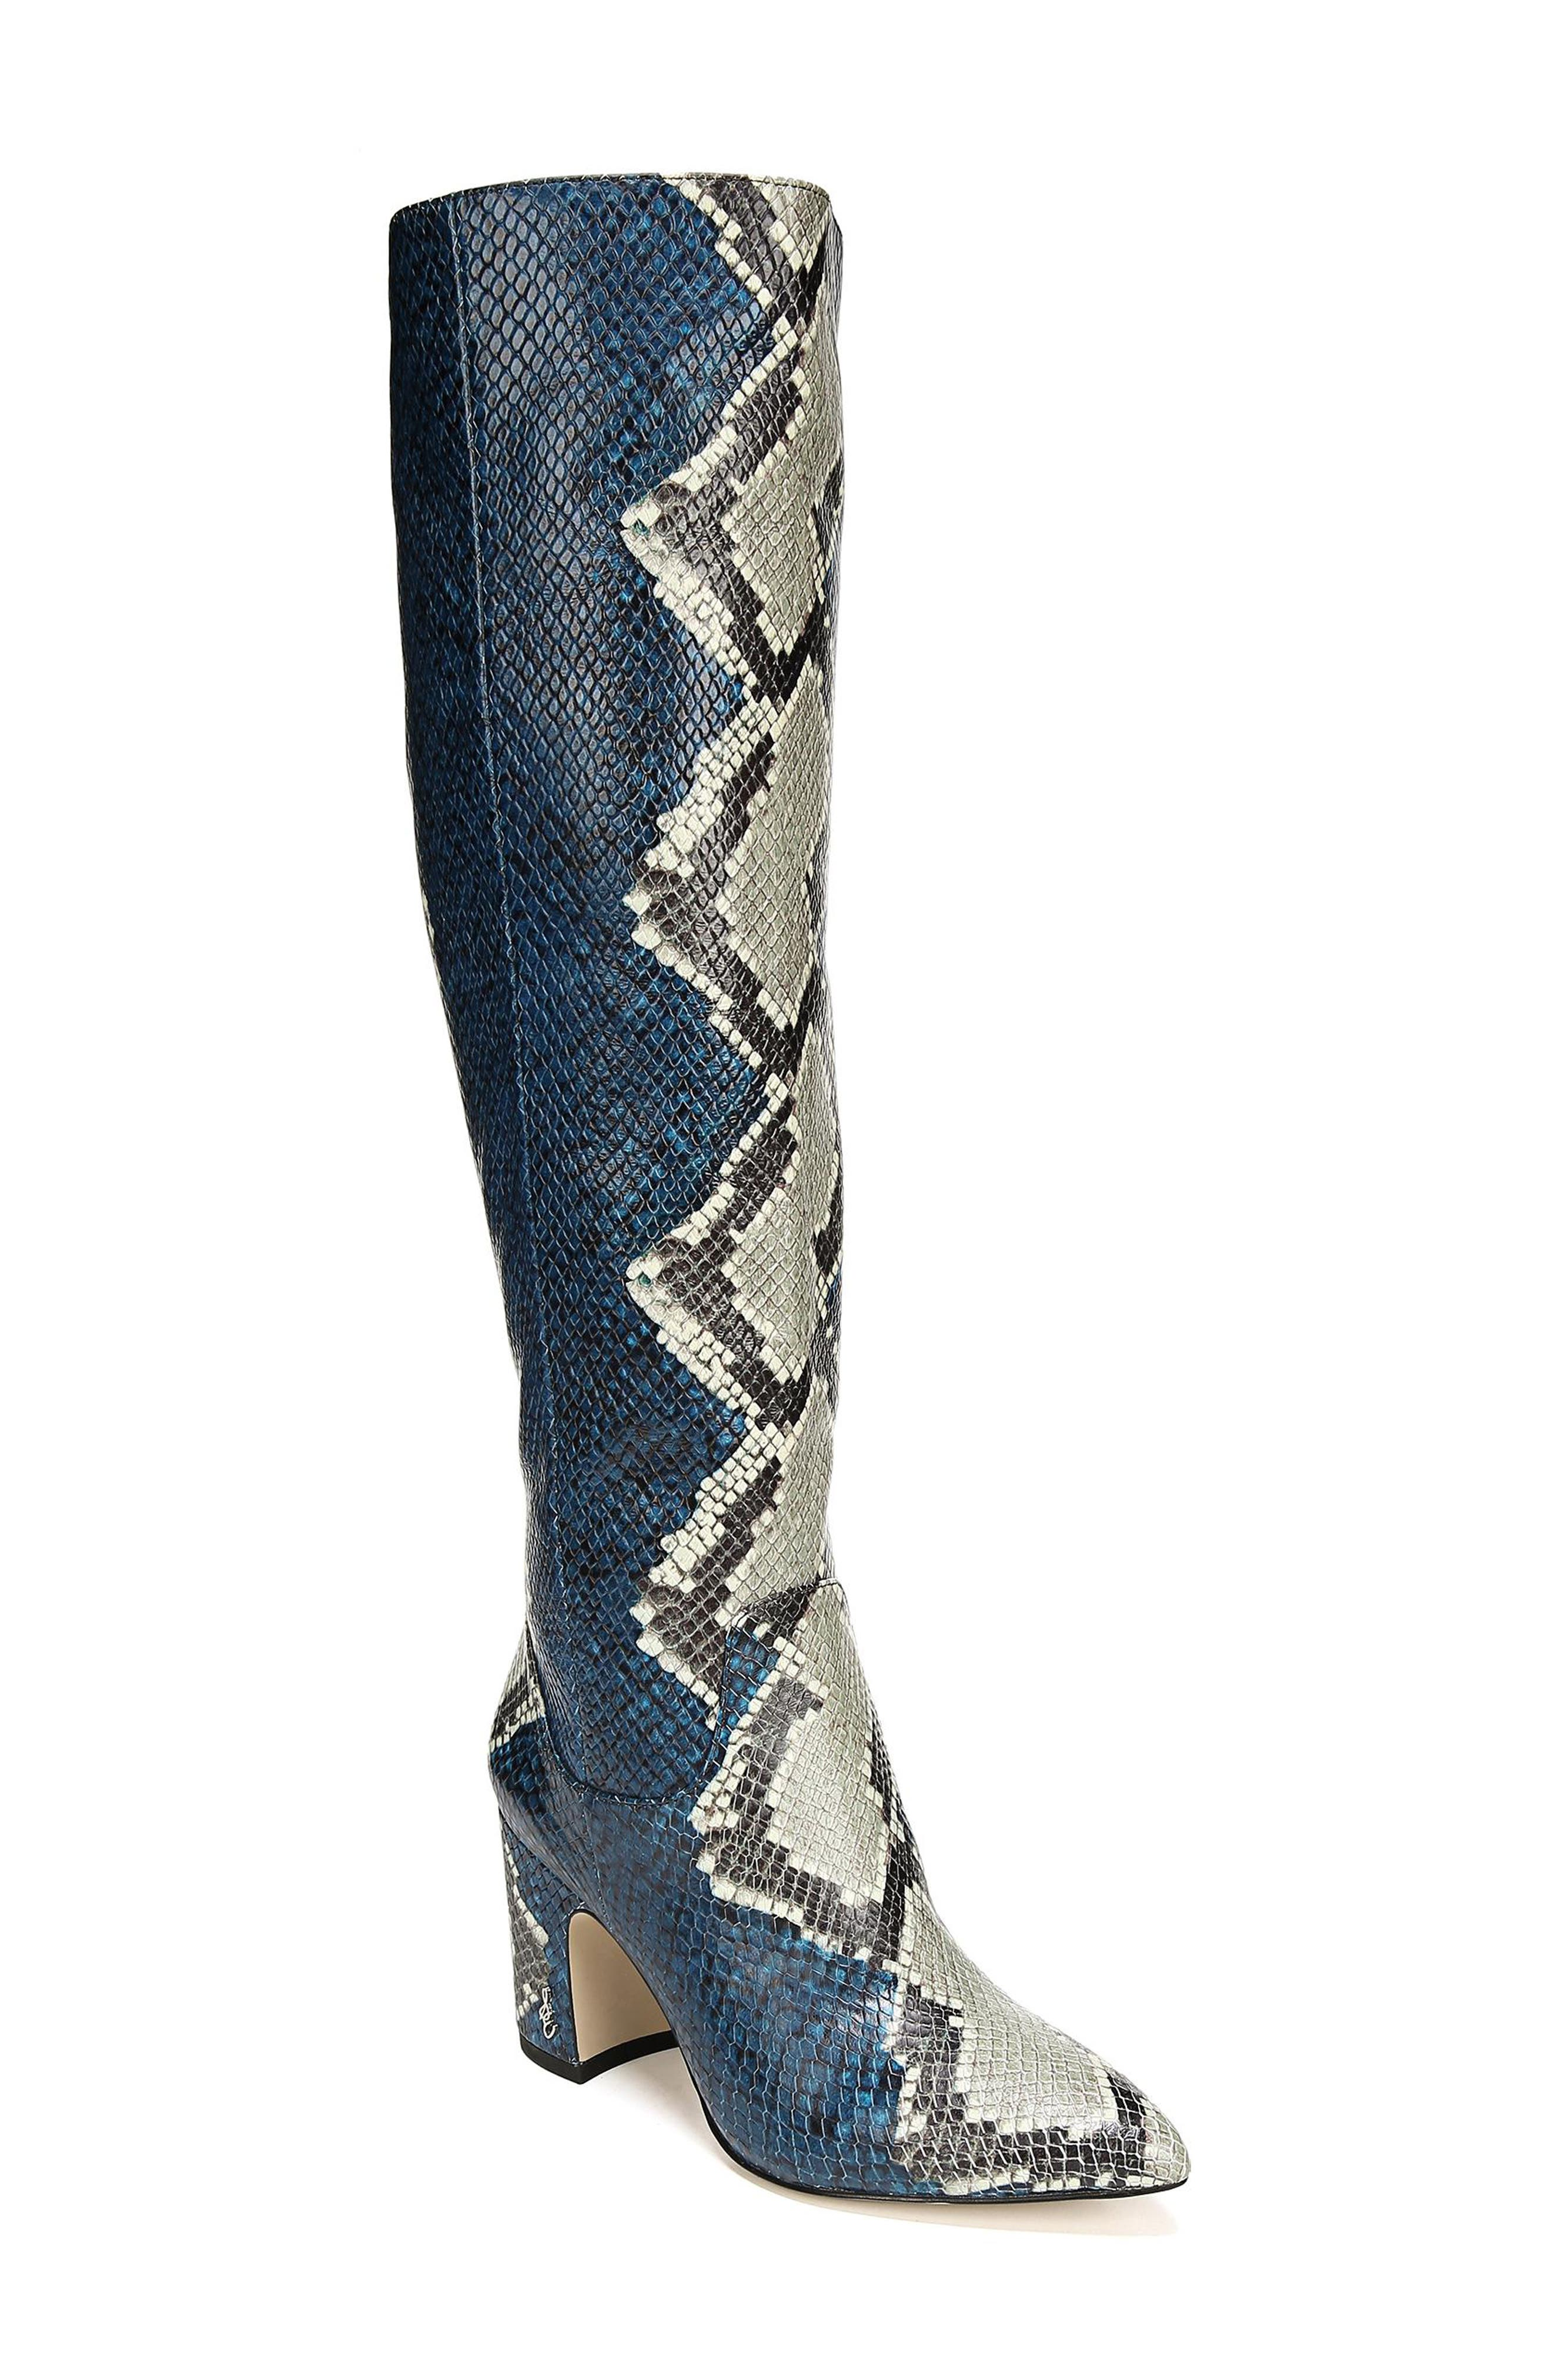 Hai Knee High Boot,                         Main,                         color, PEACOCK EMBOSSED LEATHER